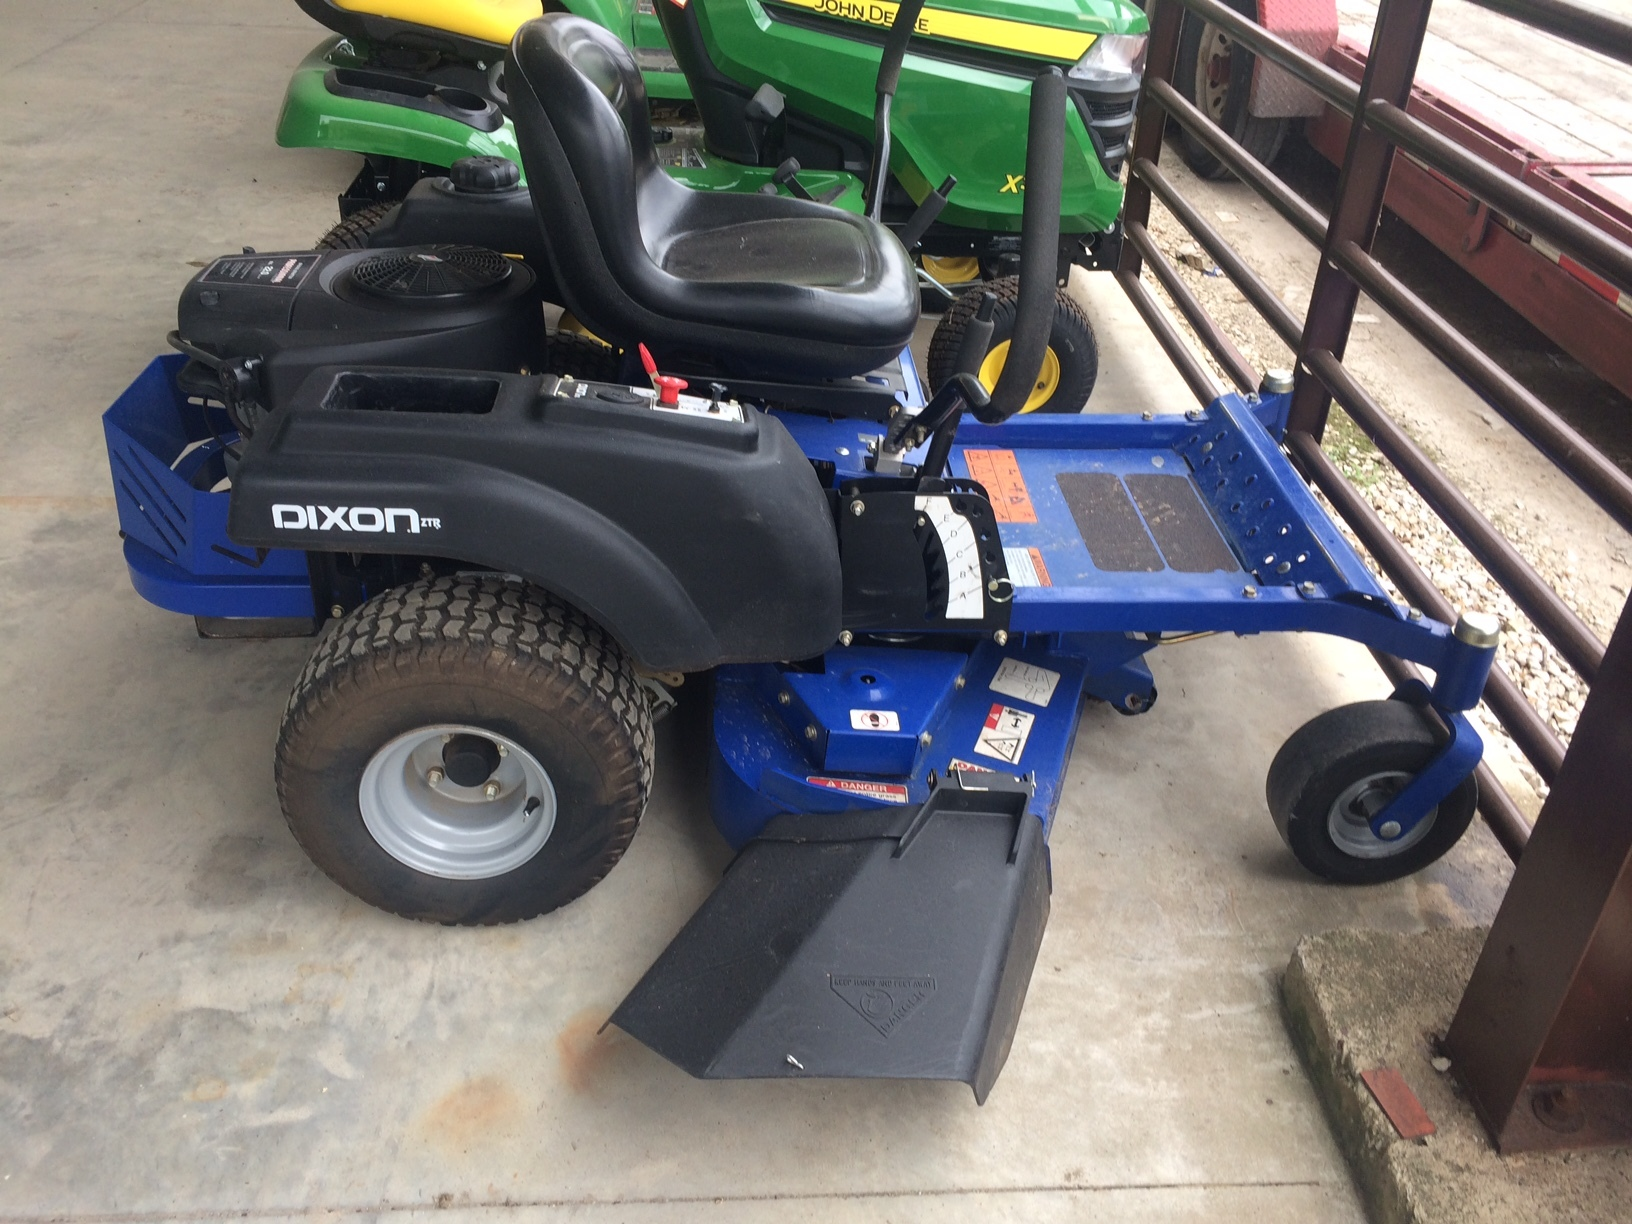 Dixon Speedztr 42 Zero Turn Mowers For Sale 64611